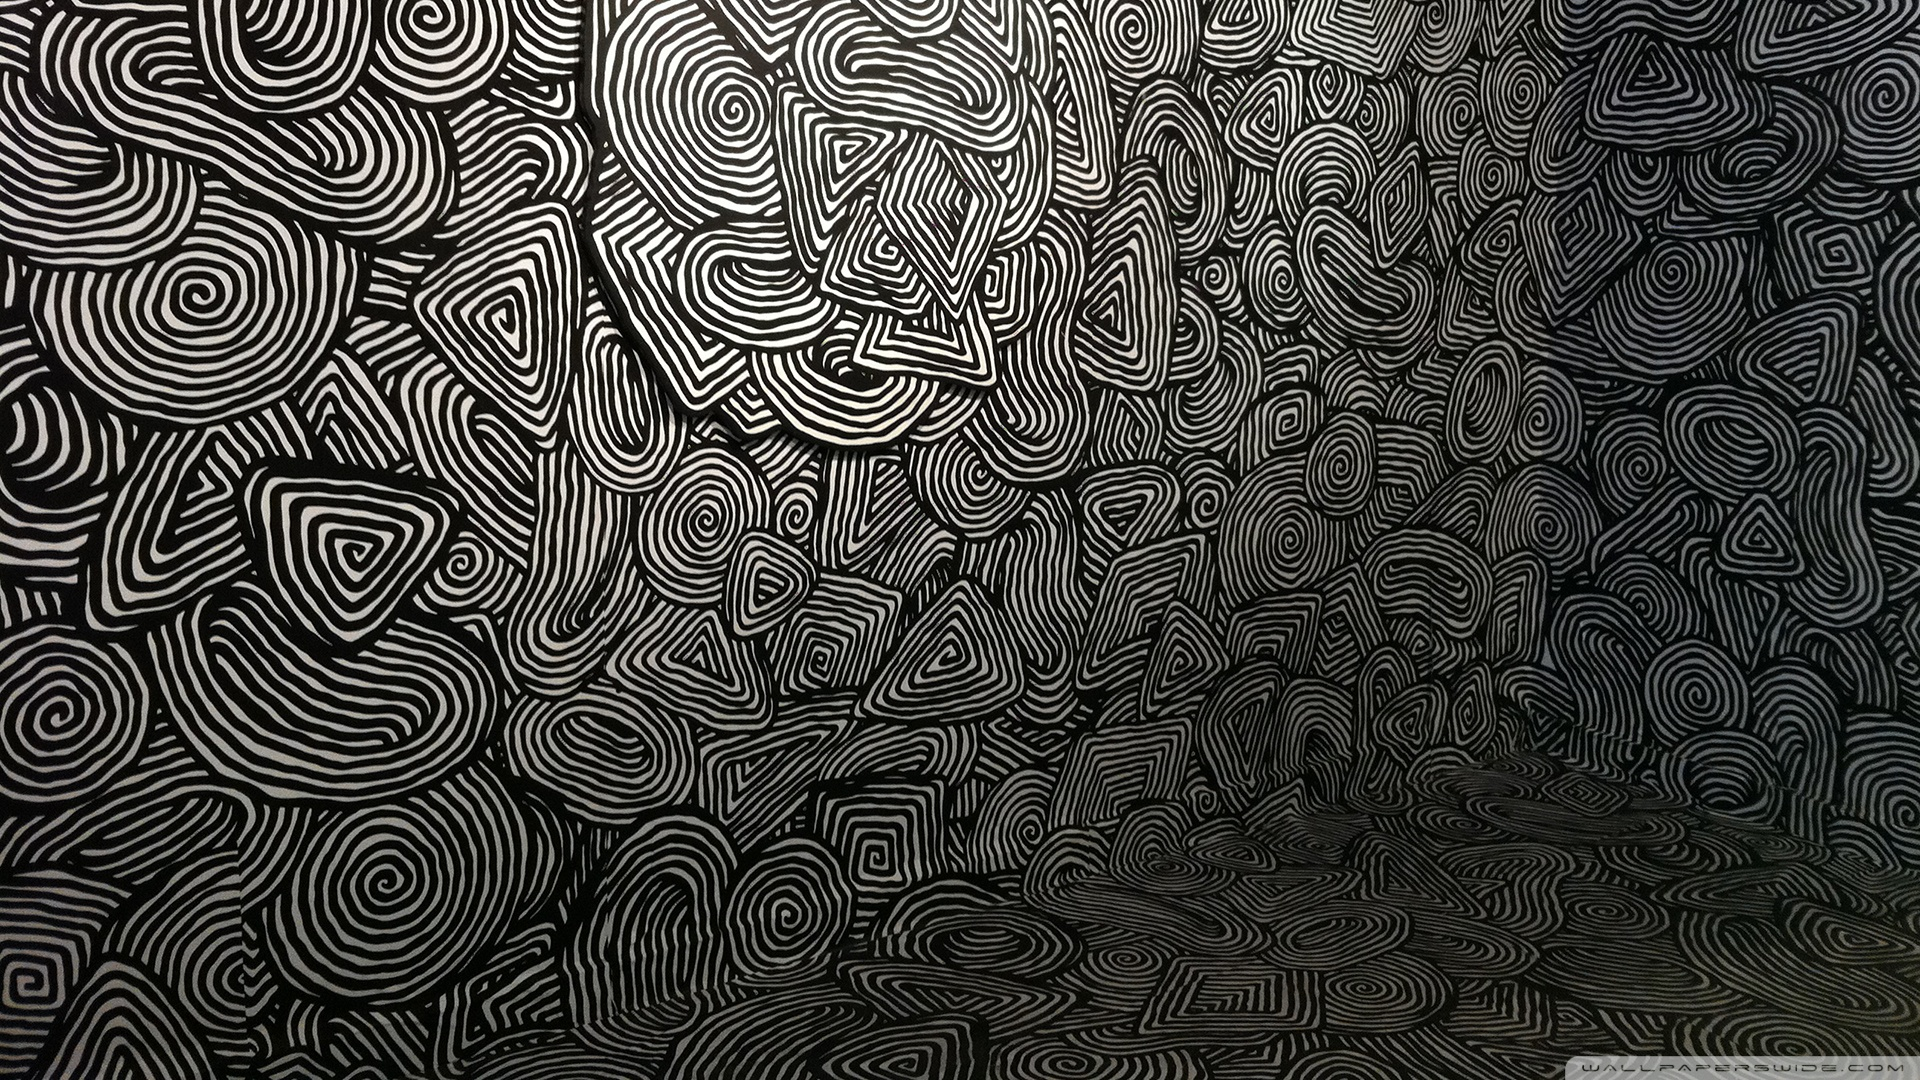 mind_easer_psychedelic_pattern-wallpaper-1920x1080